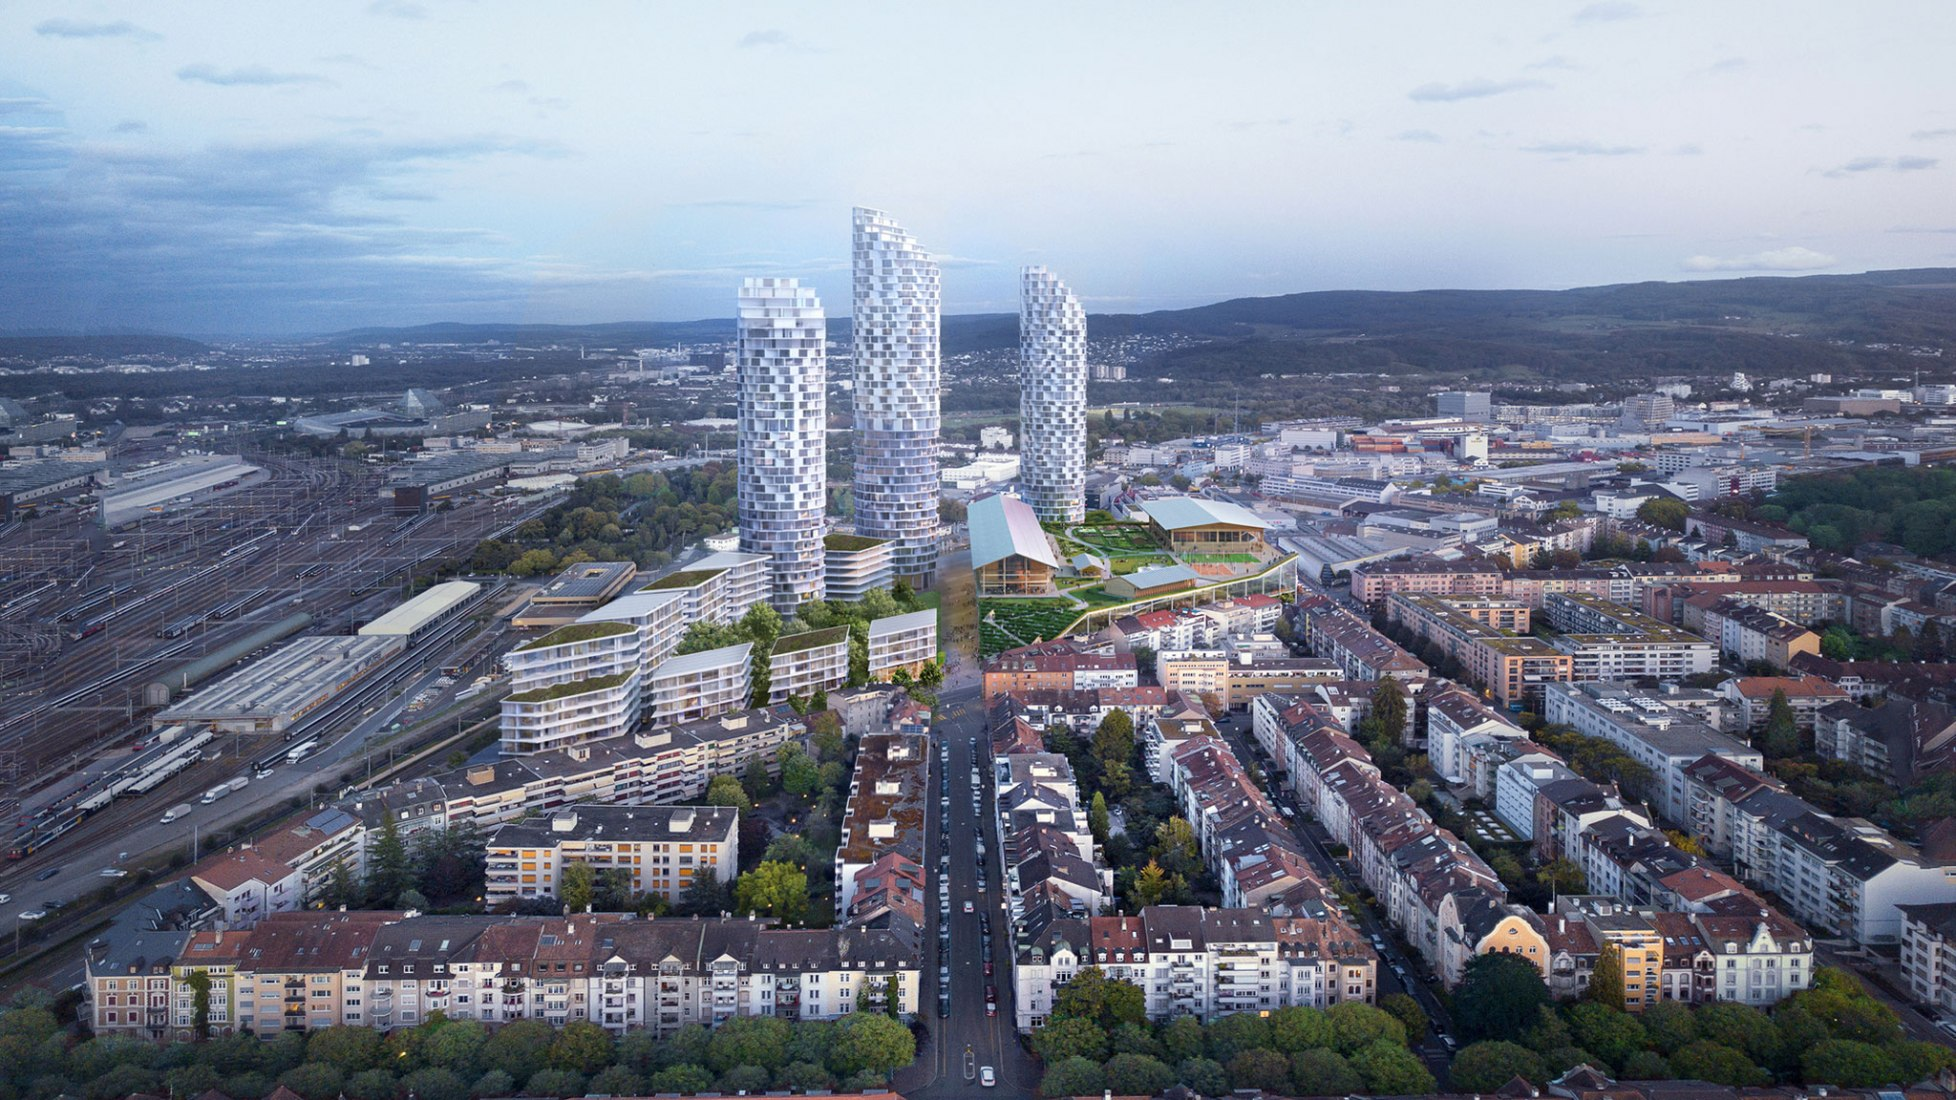 This is what the Dreispitz Nord area should look like in about ten years. The Güterstrasse (center of the image) will lead to the area in the future. Visualization courtesy of Herzog & de Meuron